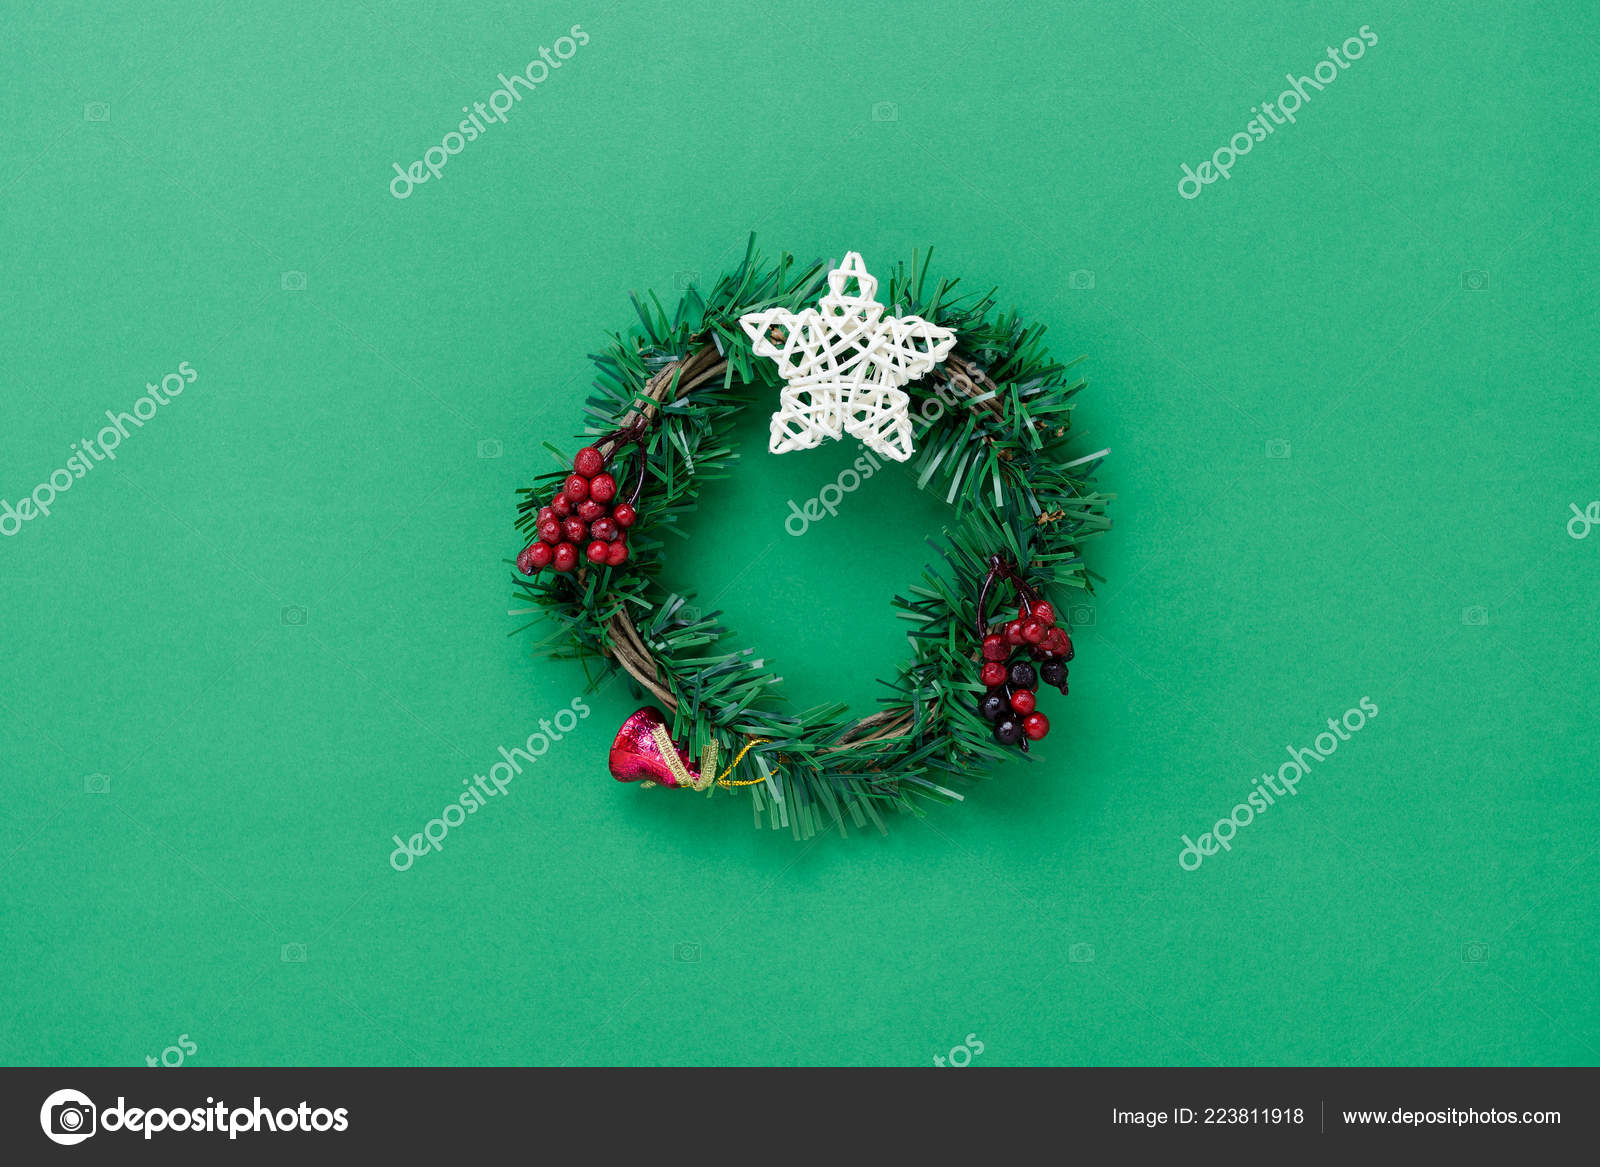 table top view of merry christmas decorations happy new year ornaments conceptflat lay essential objects the circle wreath on modern rustic green paper